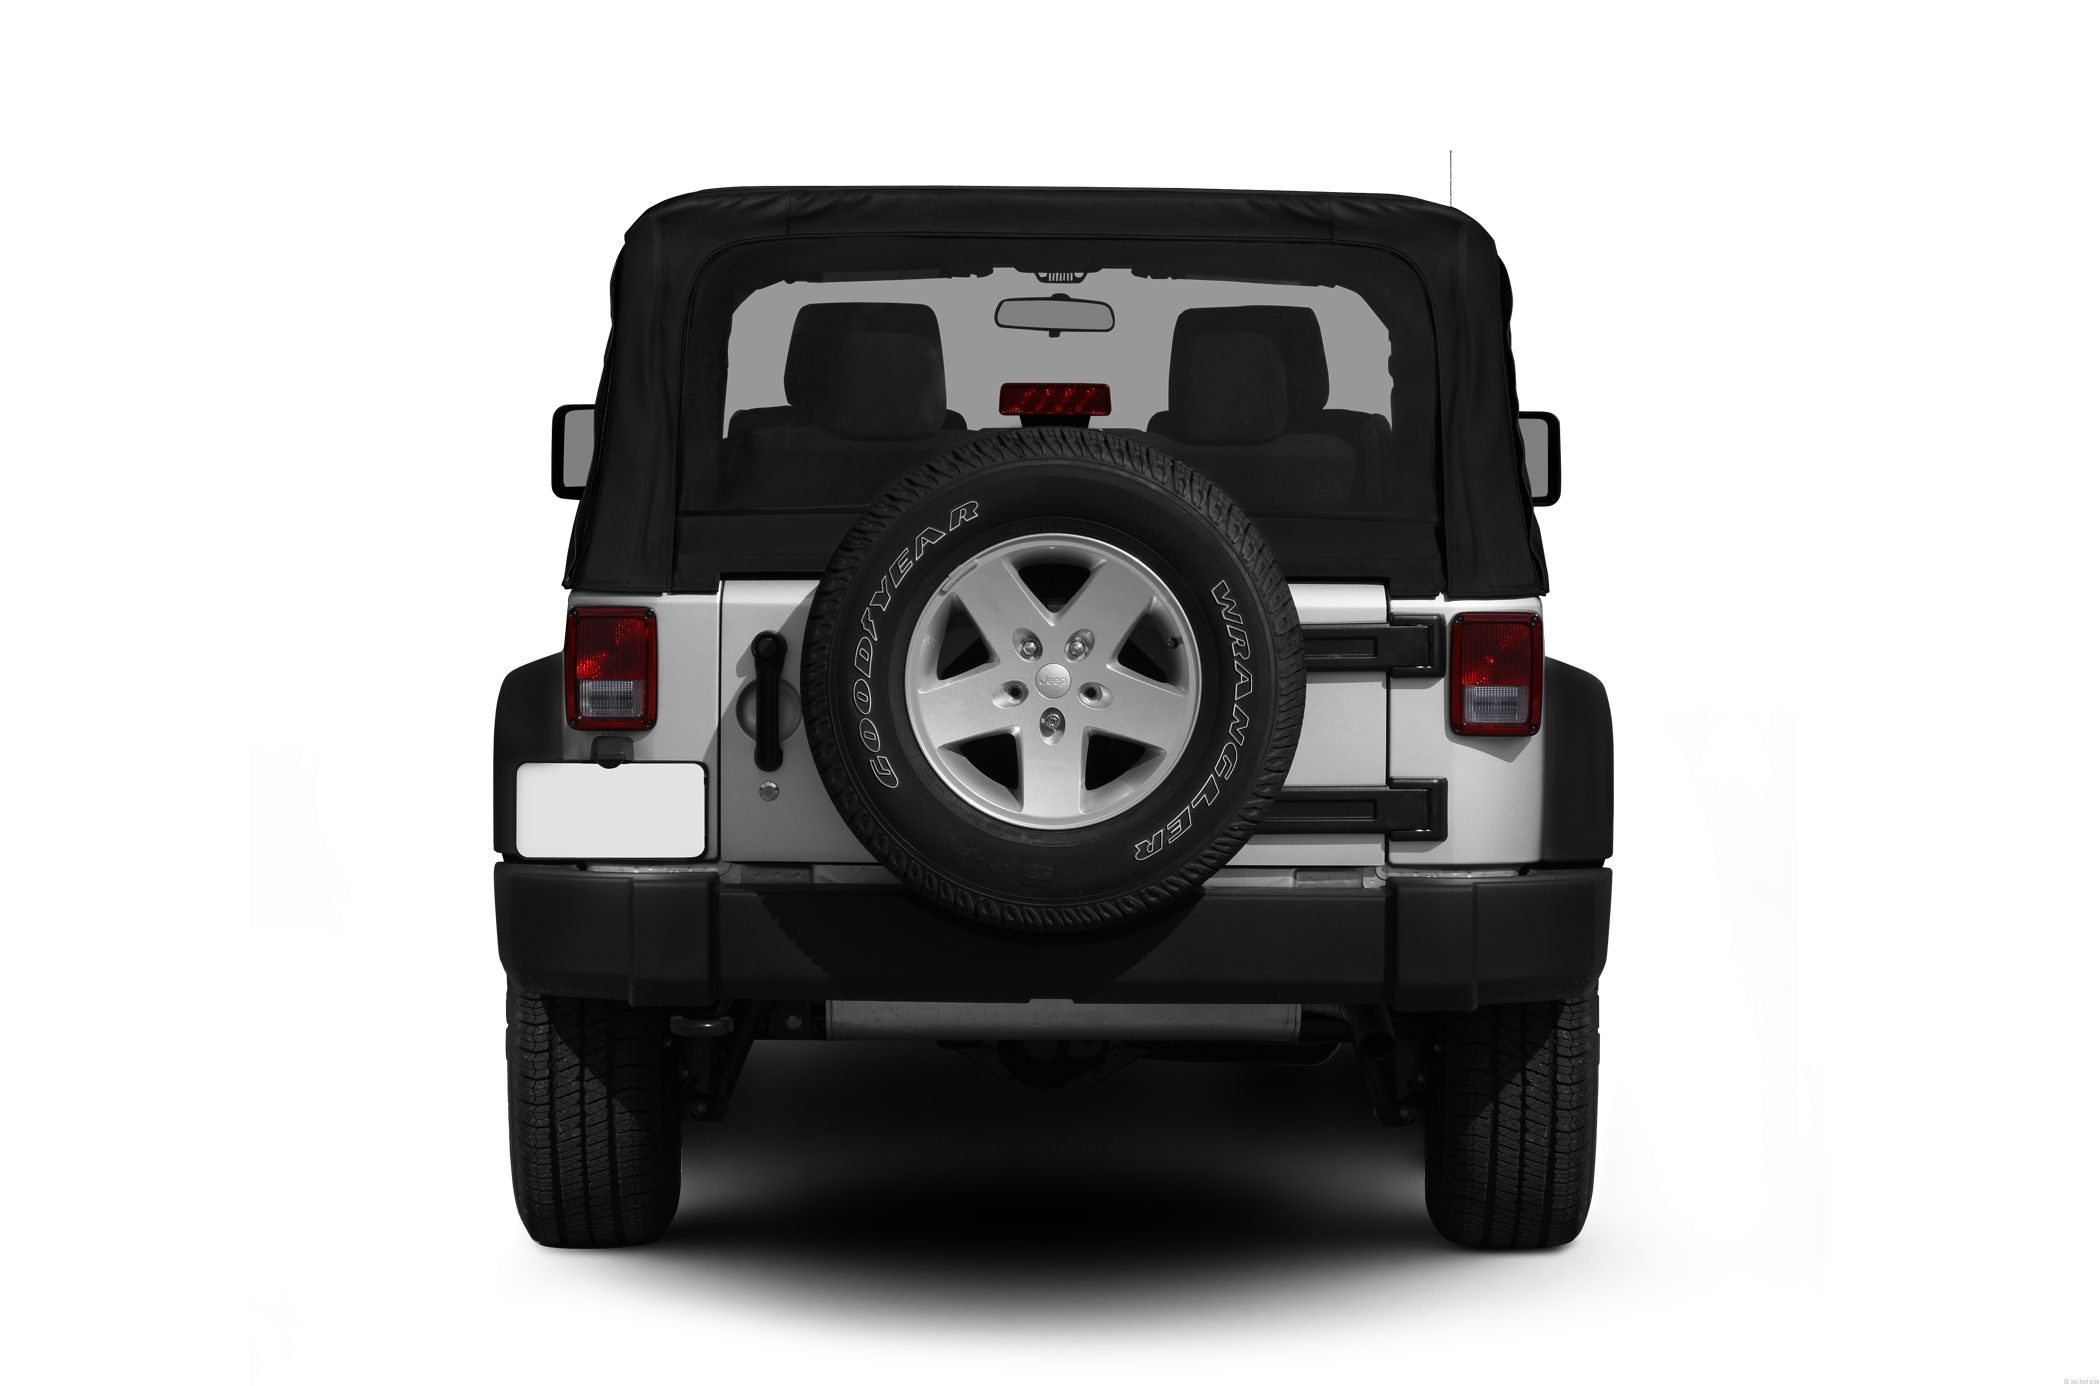 2012 jeep wrangler price photos reviews amp features jeep wrangler invoice